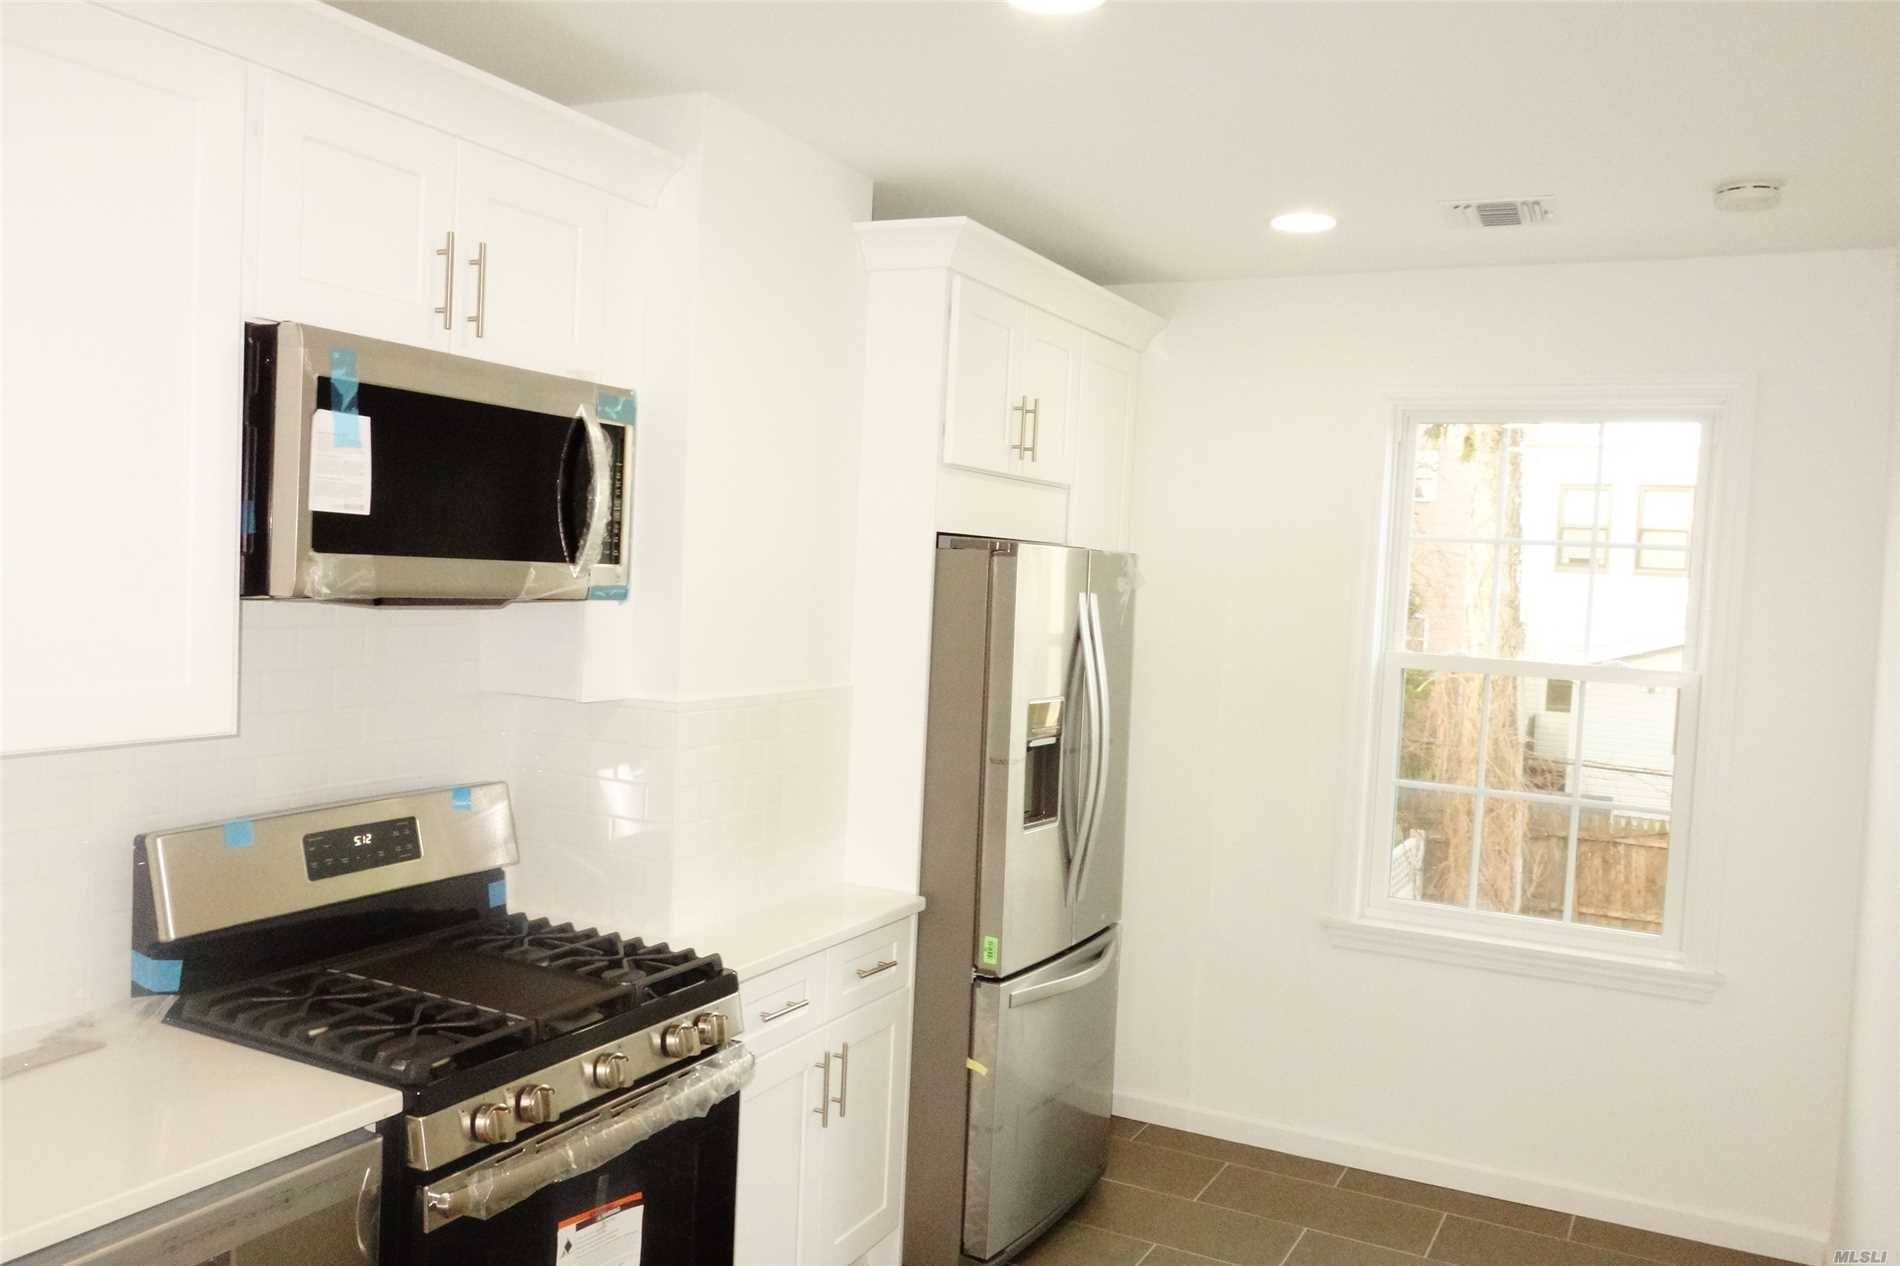 2 Beds Apt On 2nd Fl Of A House. Totally Renovated, All New And Stainless Steel Appliances, New A/C Units,  W/D On The Floor...And ..More.. Zoned Ps 128. Close To M Train And Shops And Juniper Valley Park...Call Now!